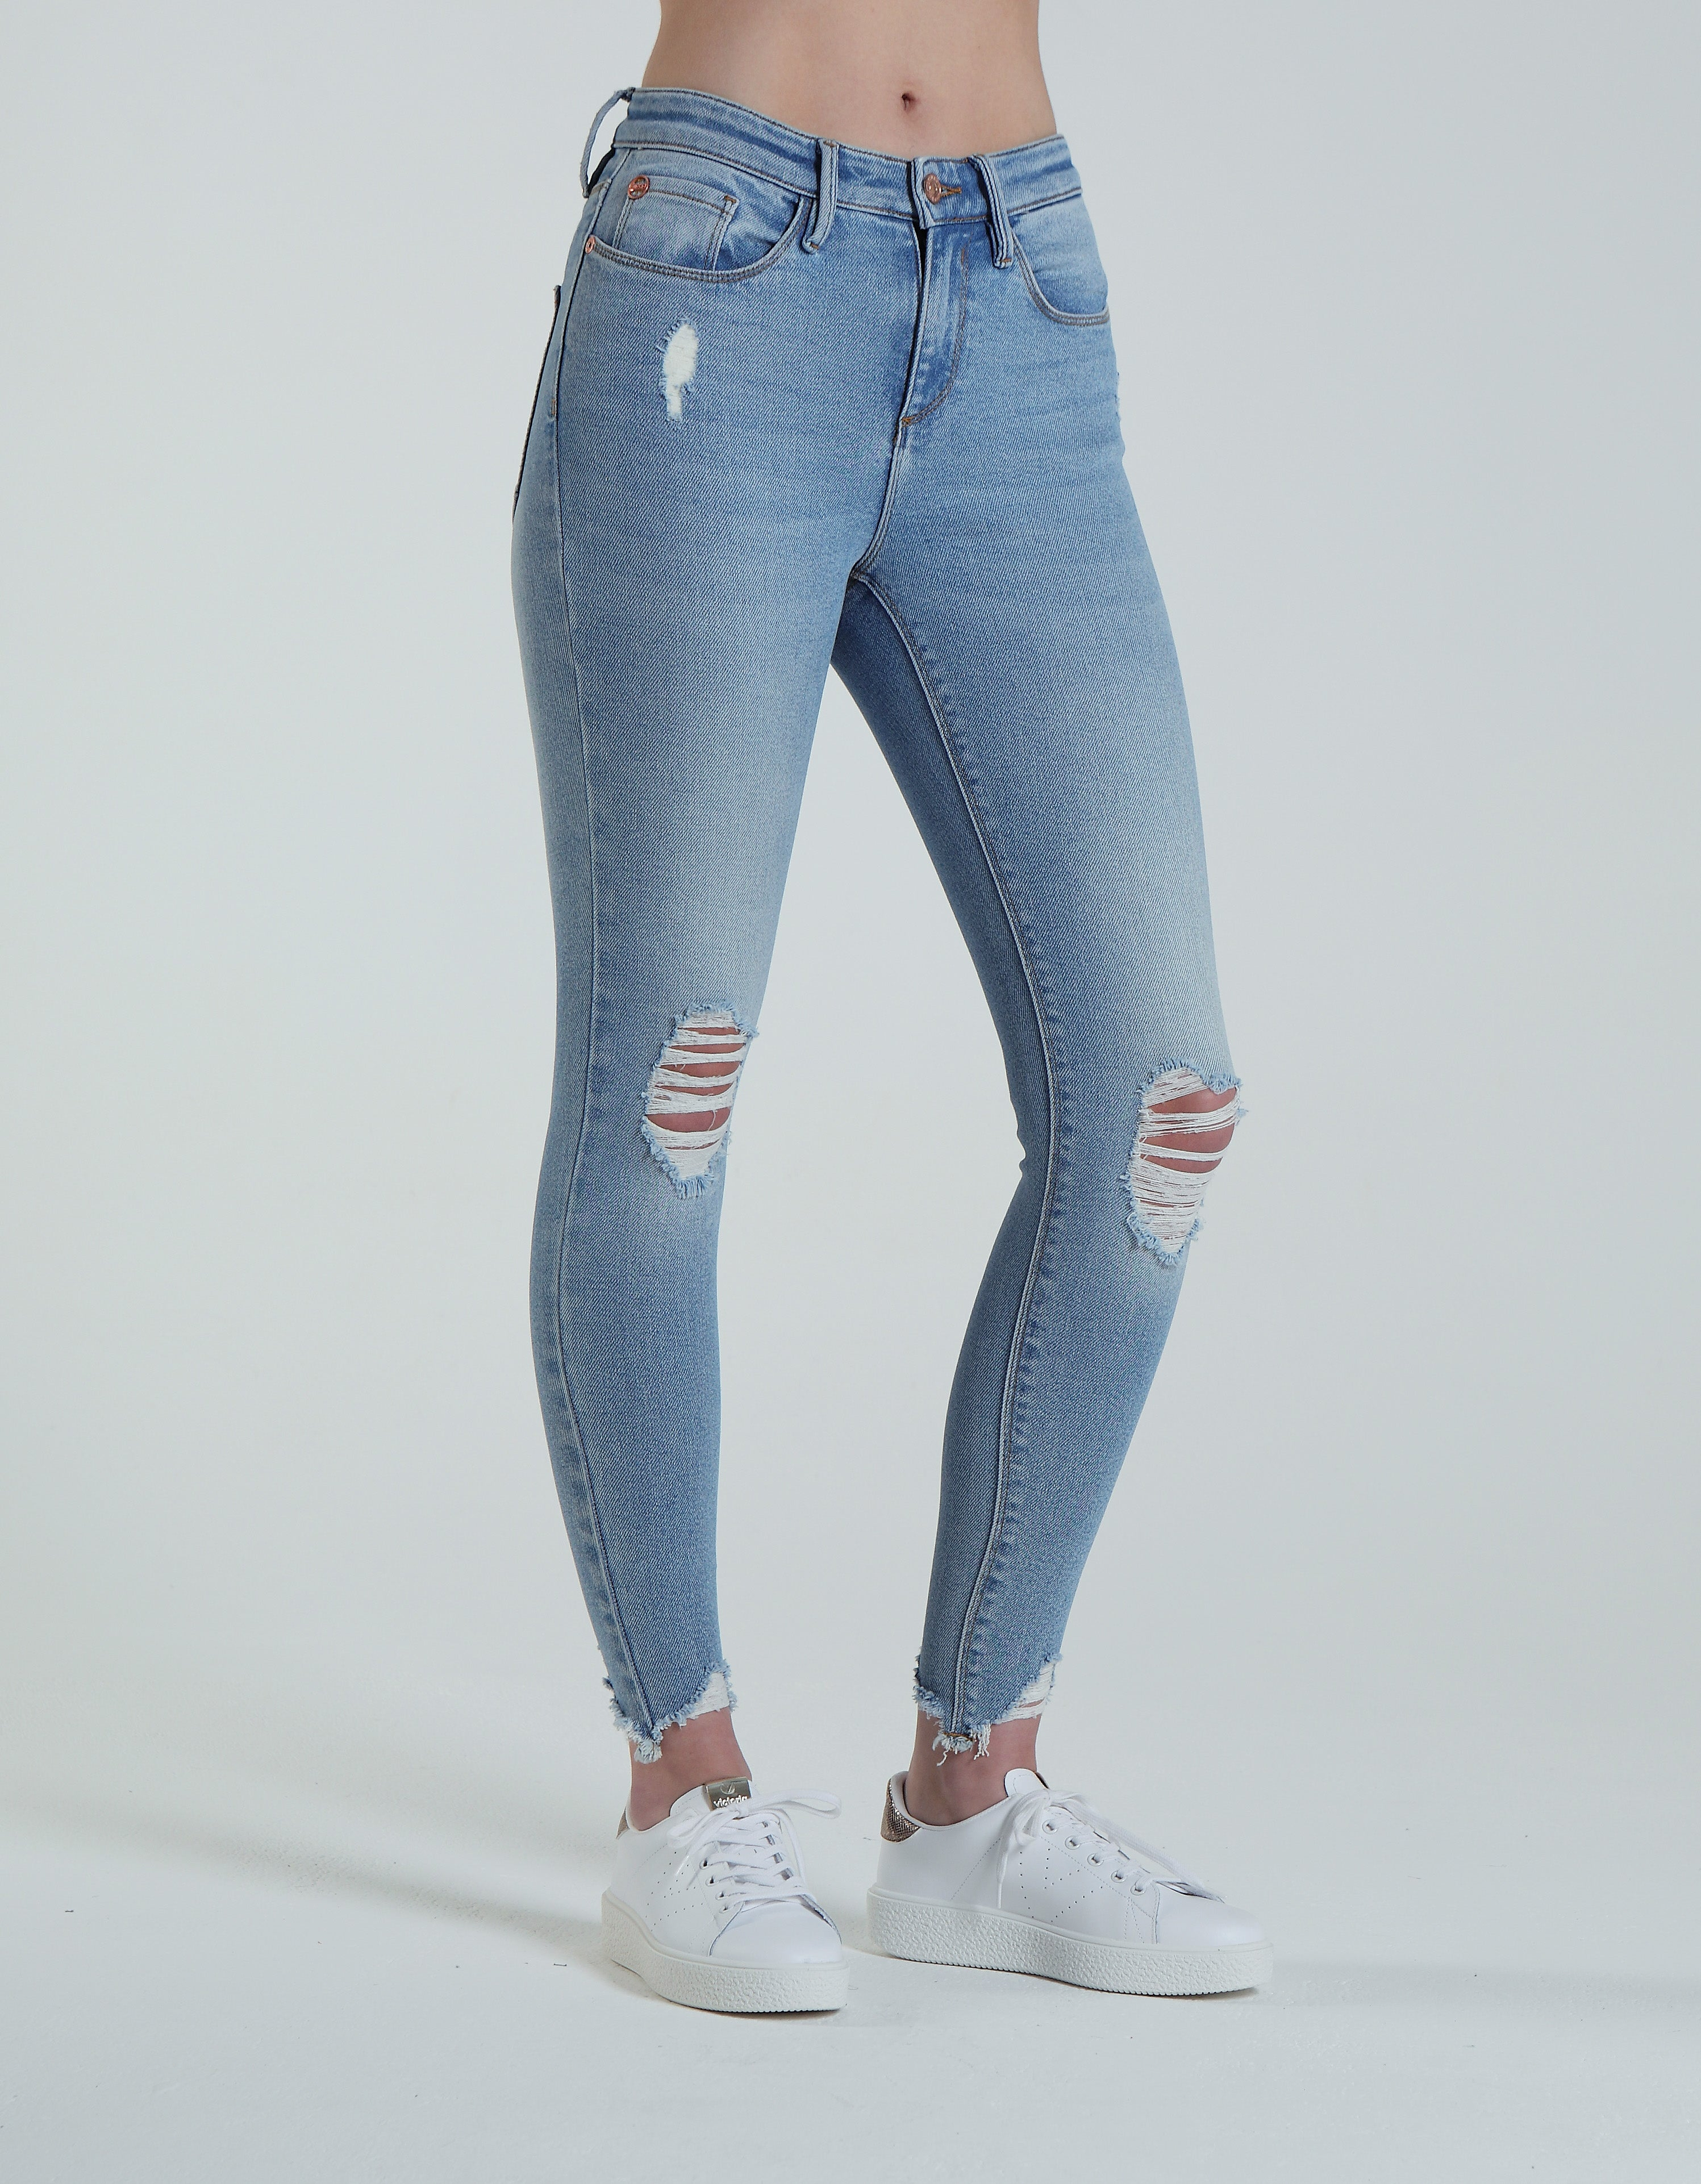 Piper Mid Rise Skinny Vintage Light Blue